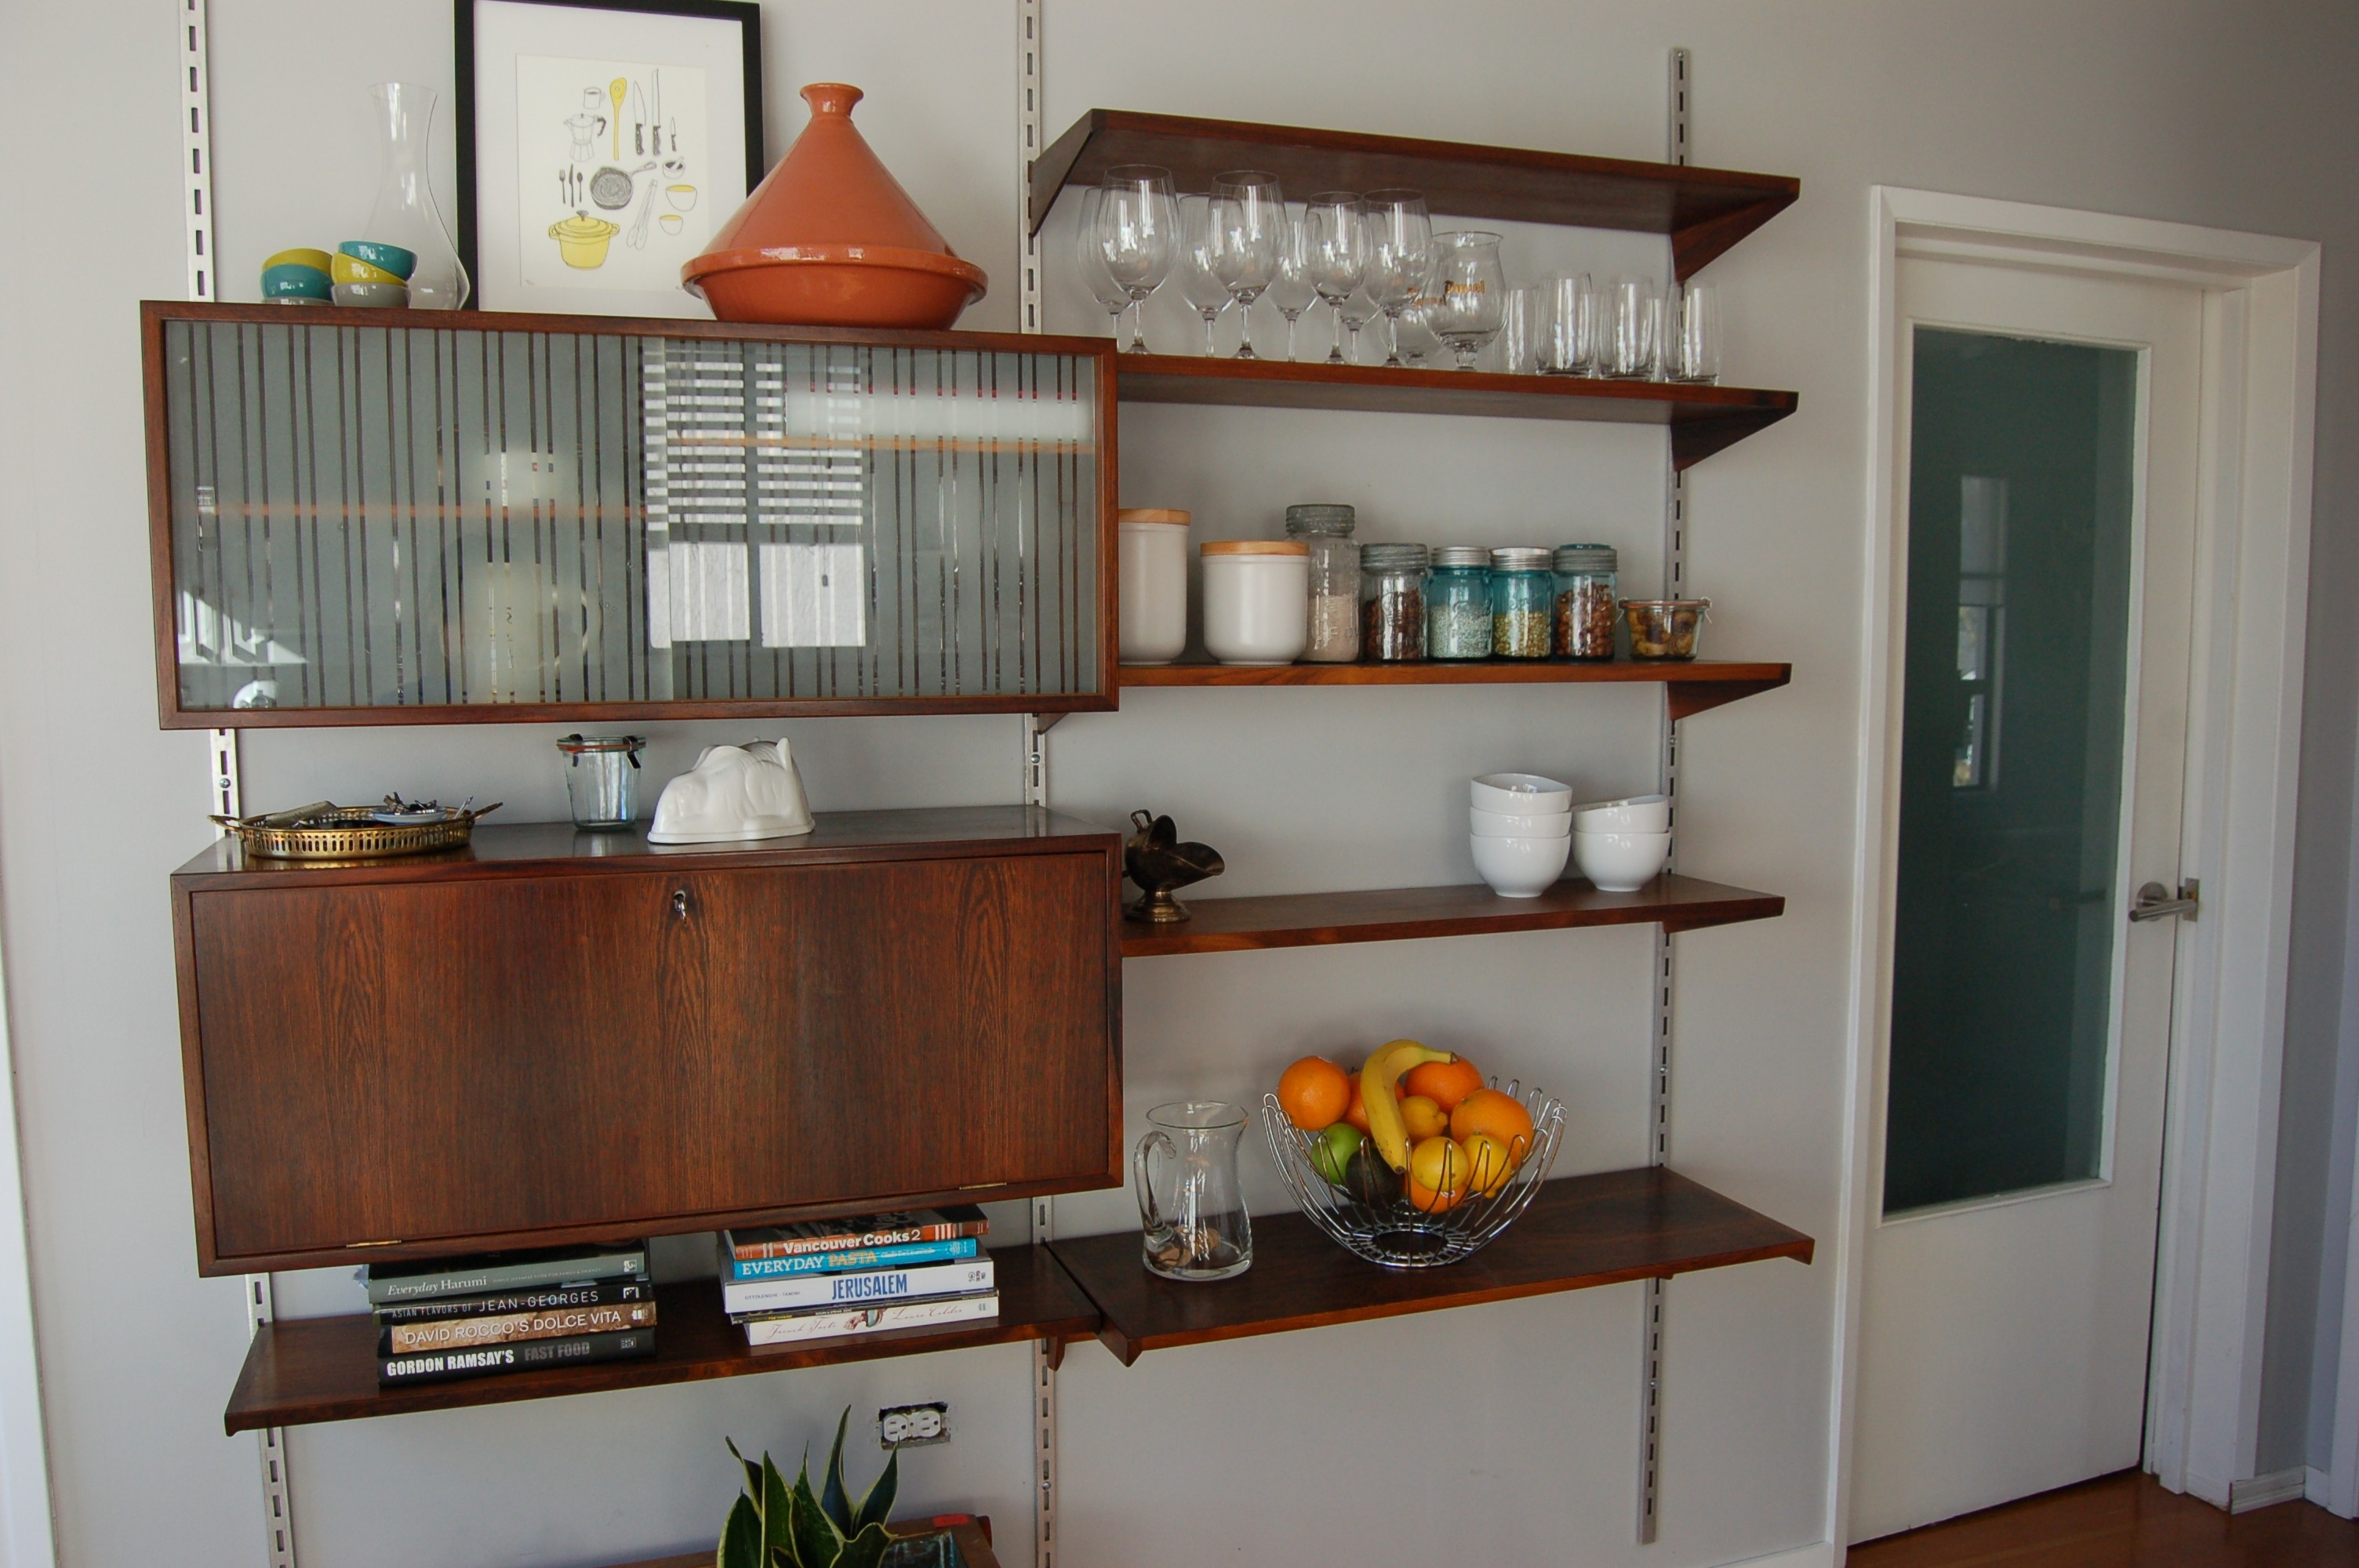 kitchen-industrial-tiered-floating-kitchen-cabinets-aside-glass-interior-door-floating-kitchen-cabinets-always-solve-in-topical-sense